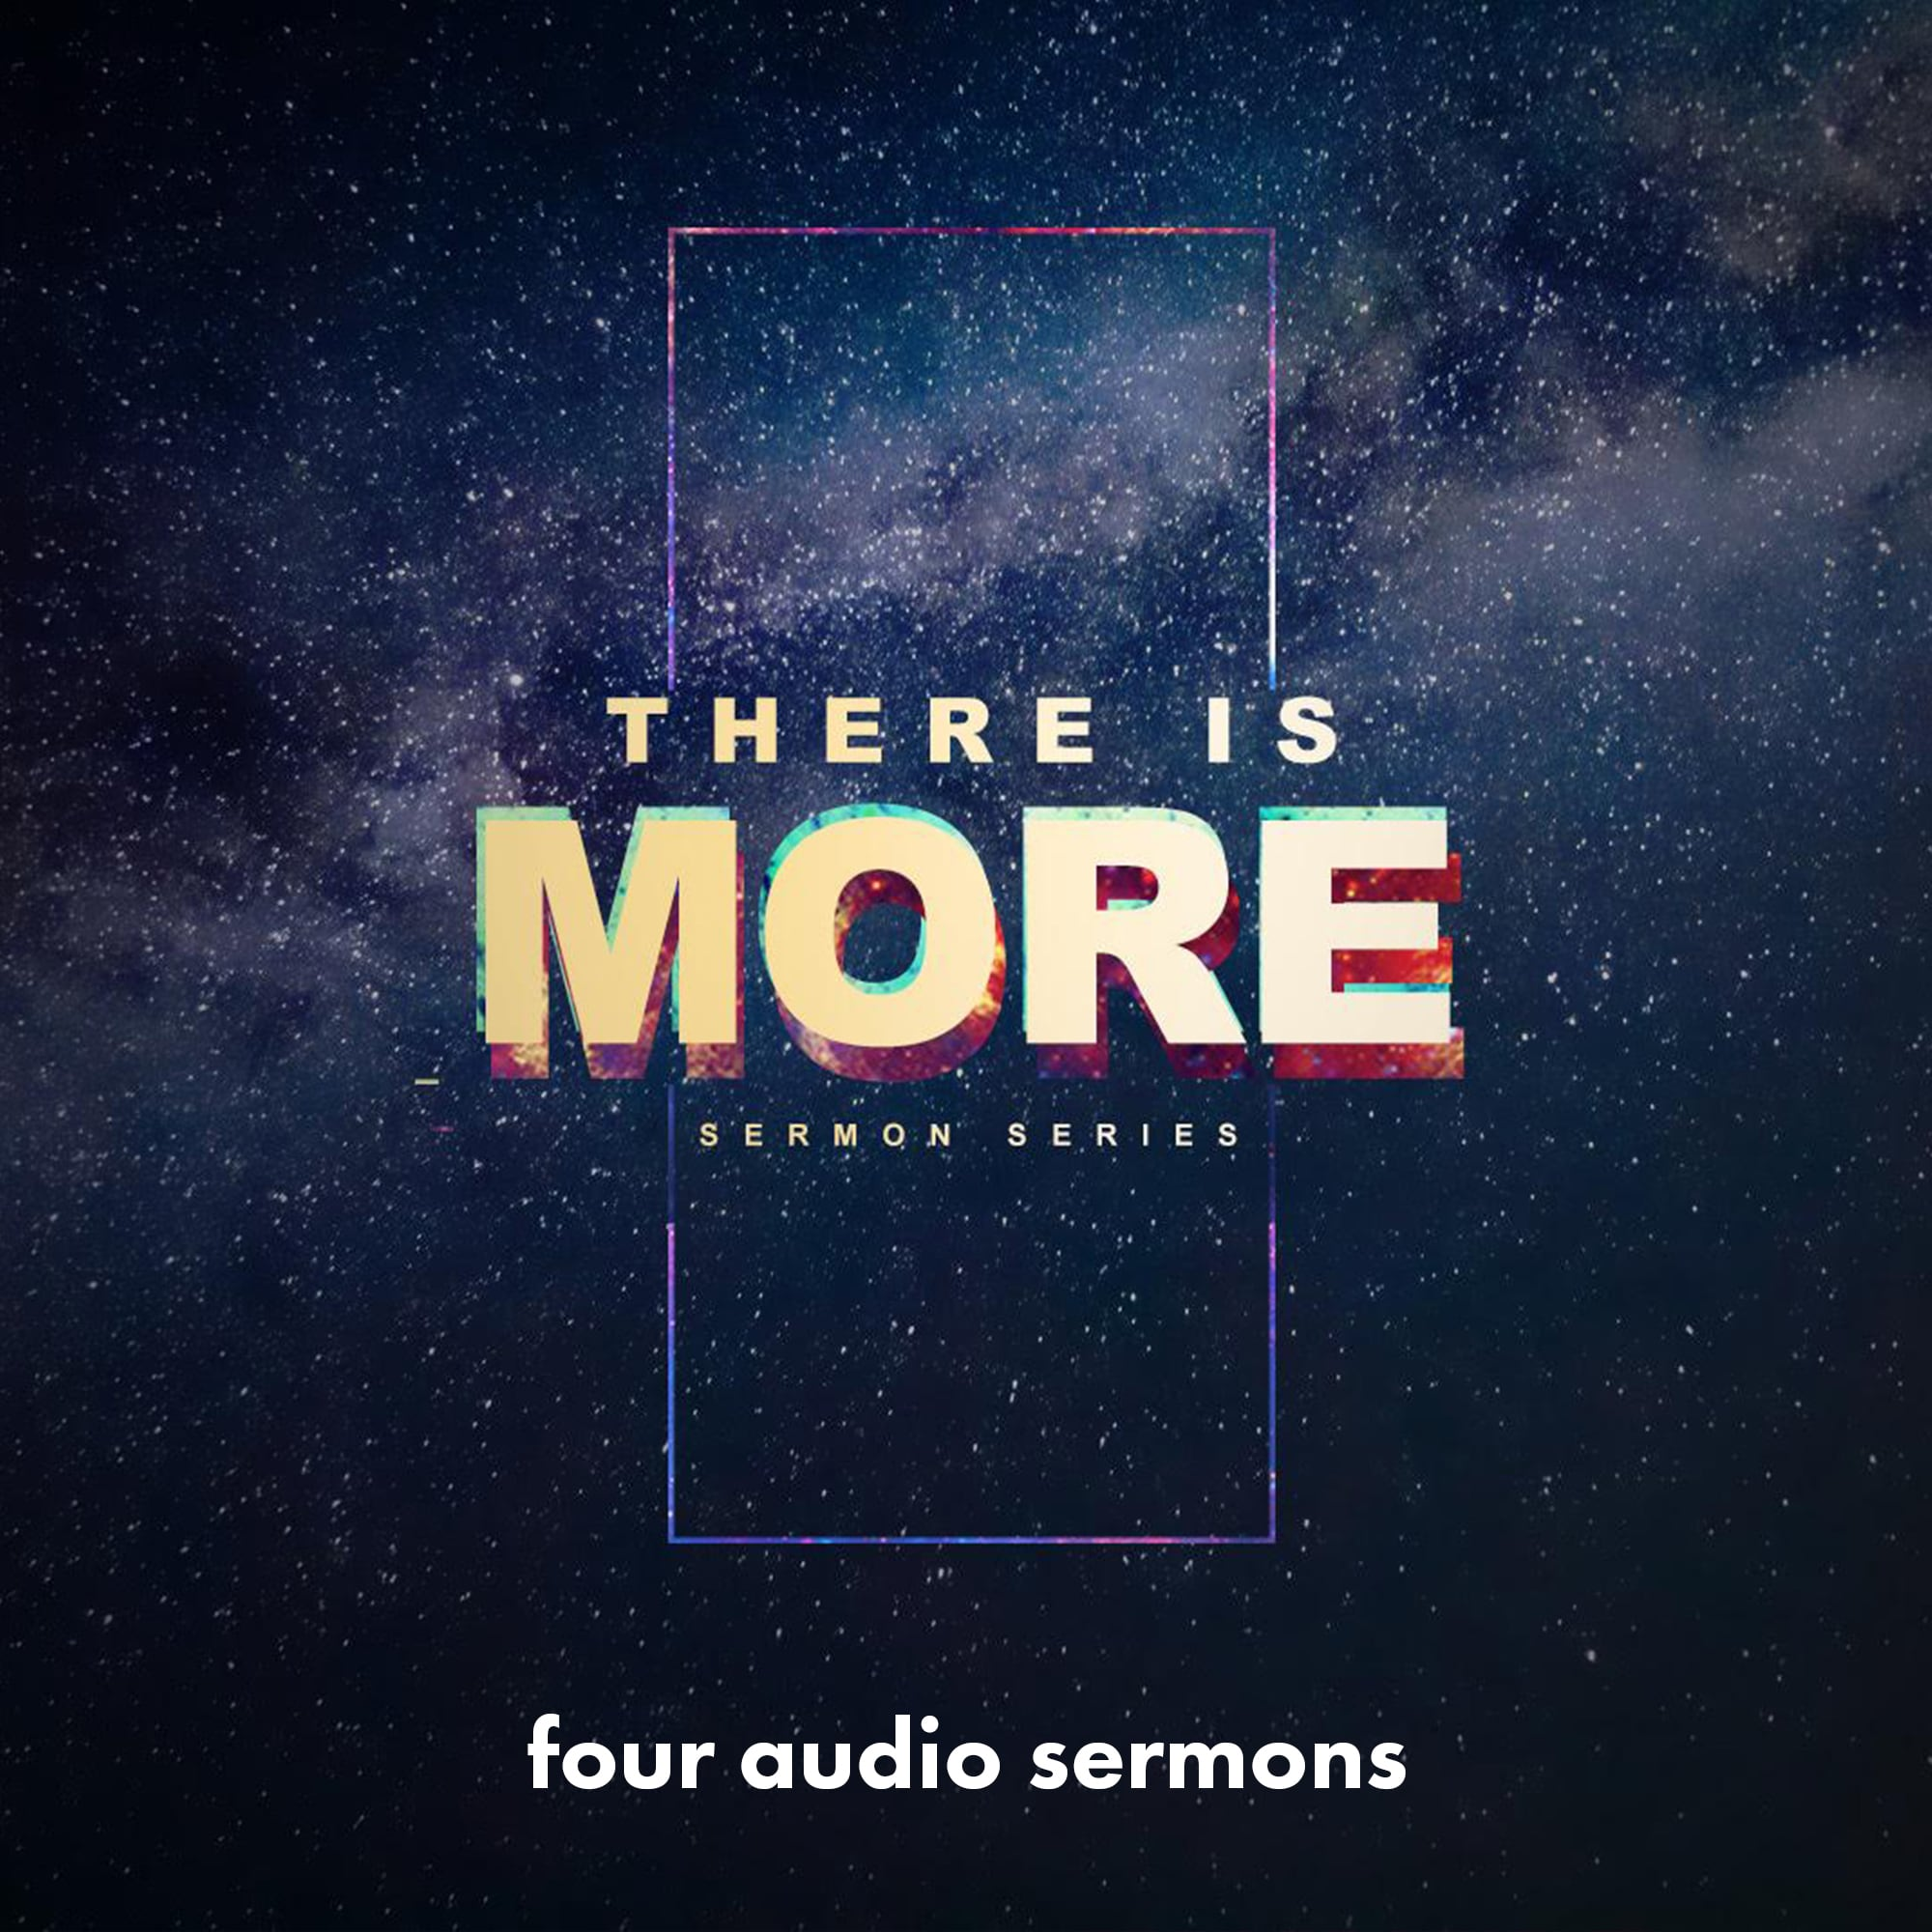 Series: There is More